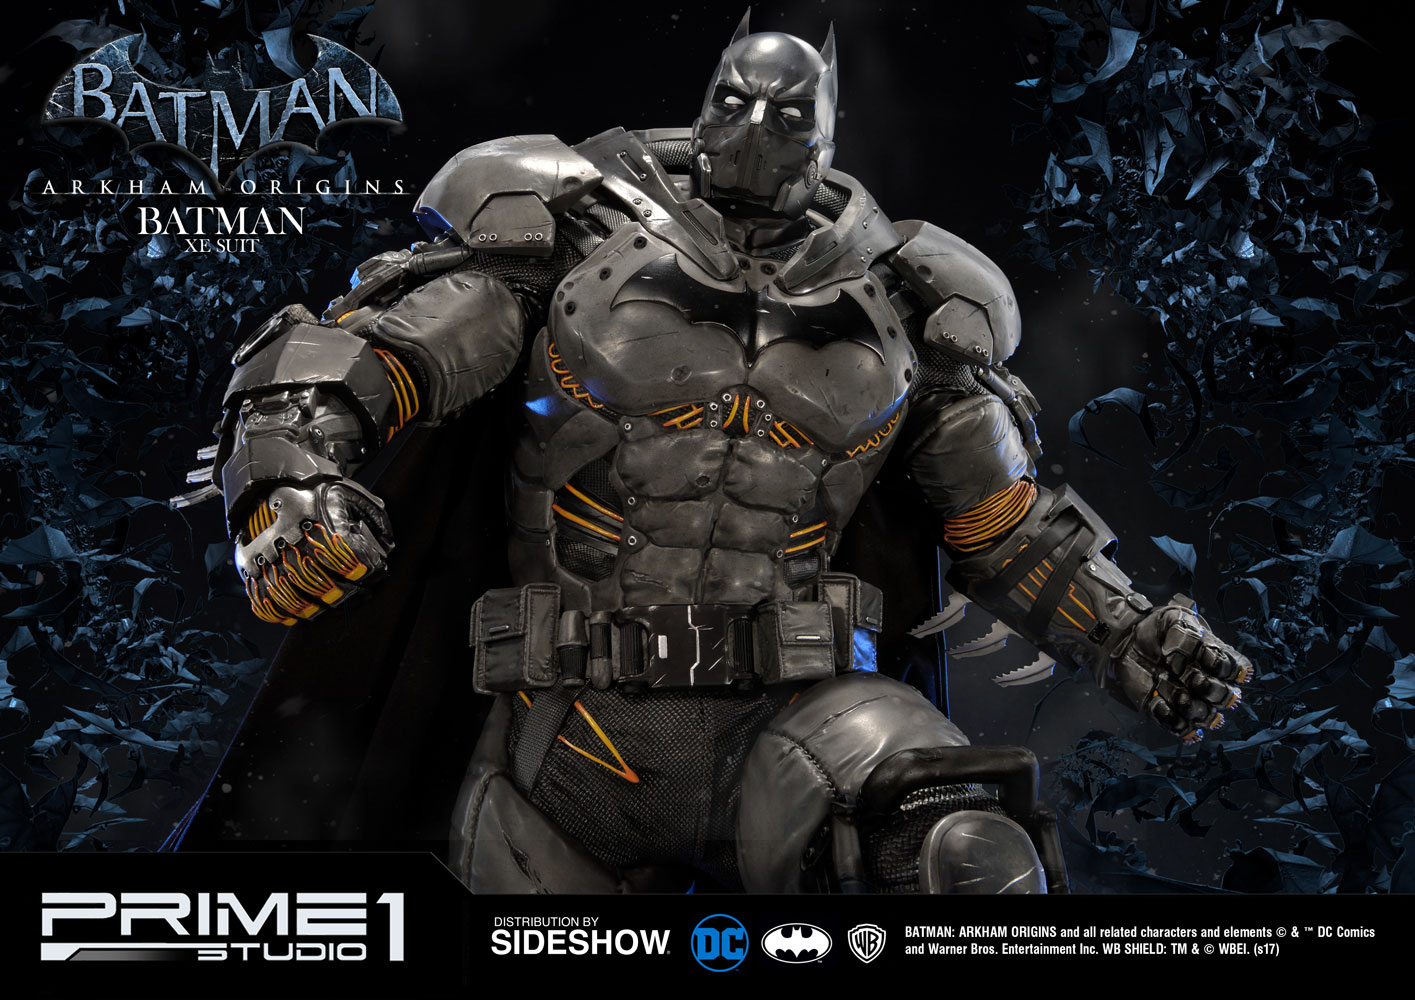 batman arkham origins batman xe suit statue